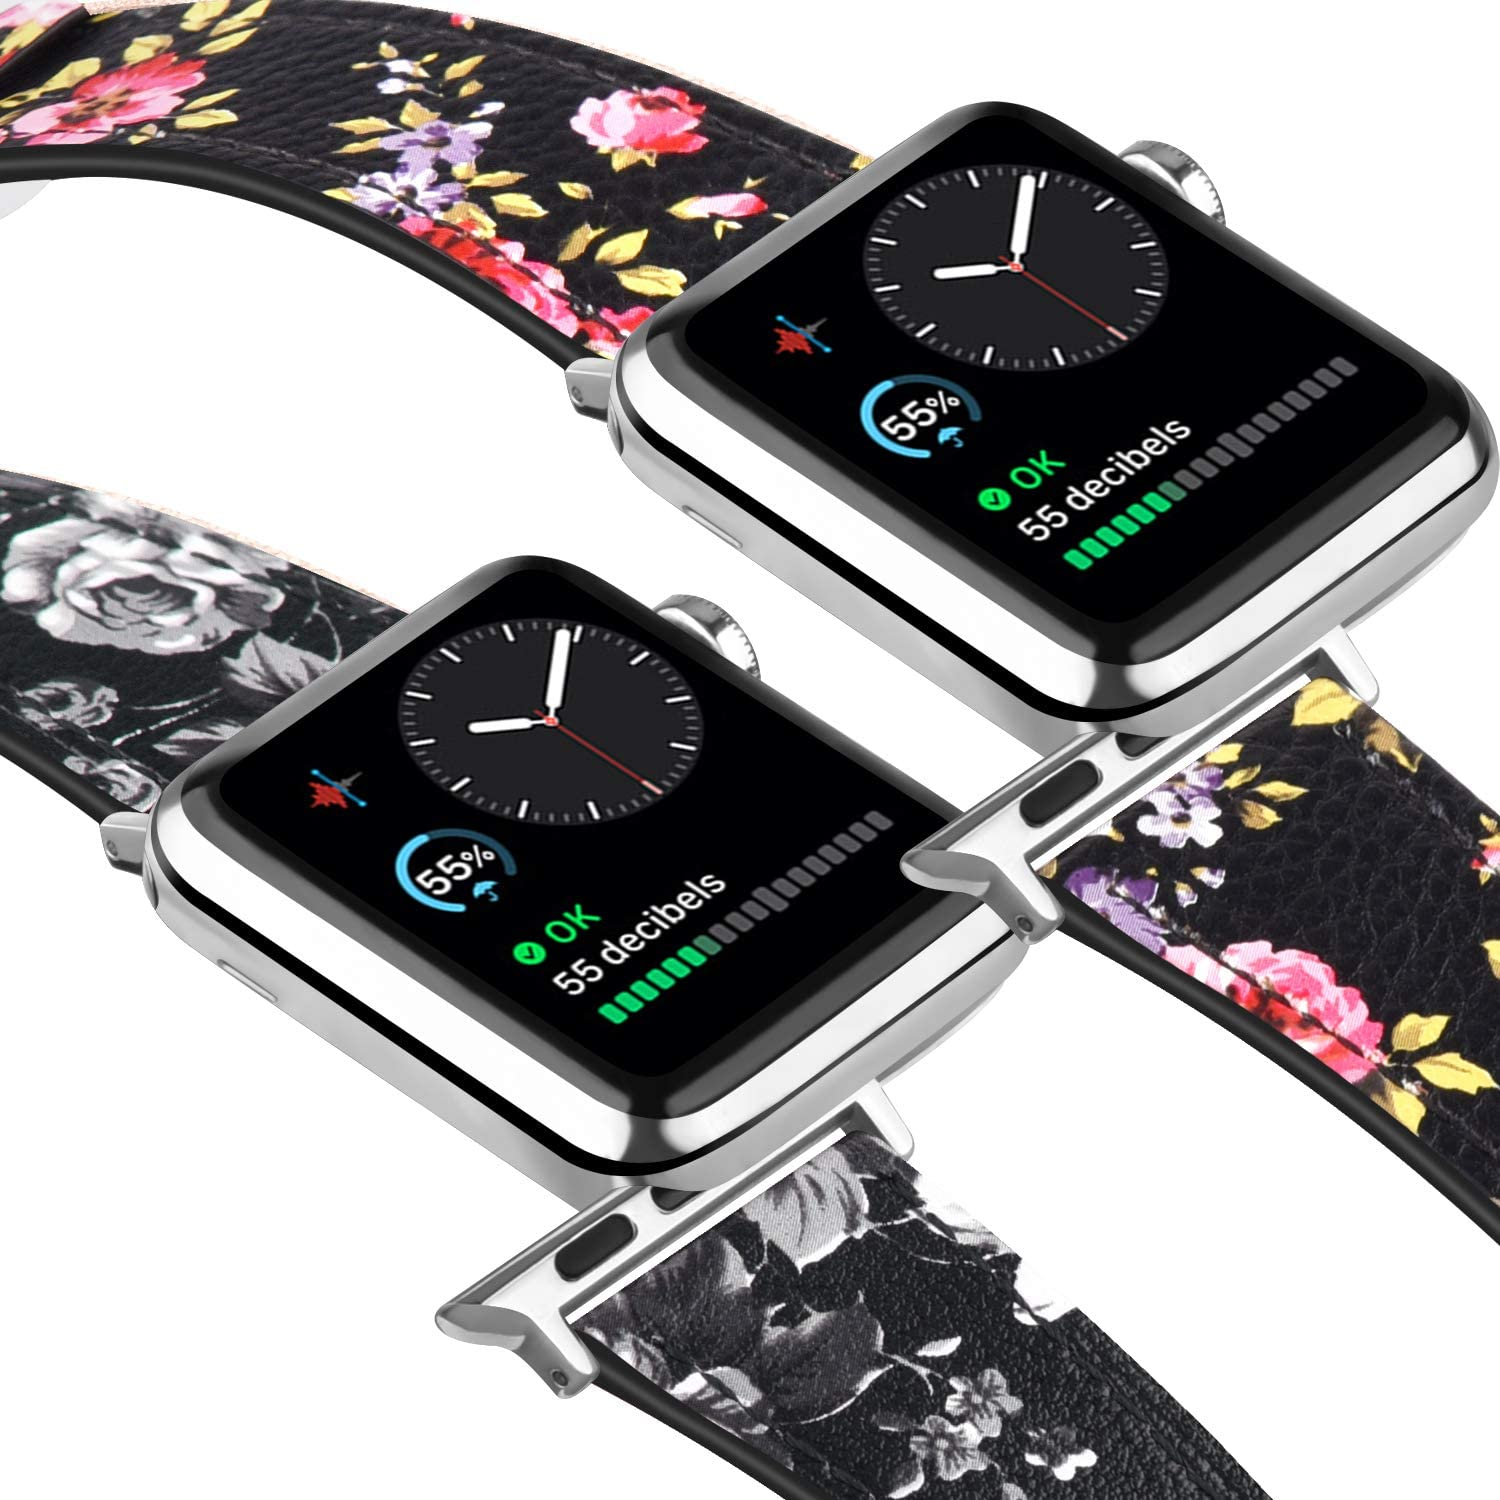 Tobfit Leather Bands Compatible with Apple Watch Band 38mm 40mm 42mm 44mm Women Men, Top Grain Leather Watch Band Compatible with iWatch Series 5/4/3/2/1 (Floral Gray & Floral Pink, 38mm/40mm)